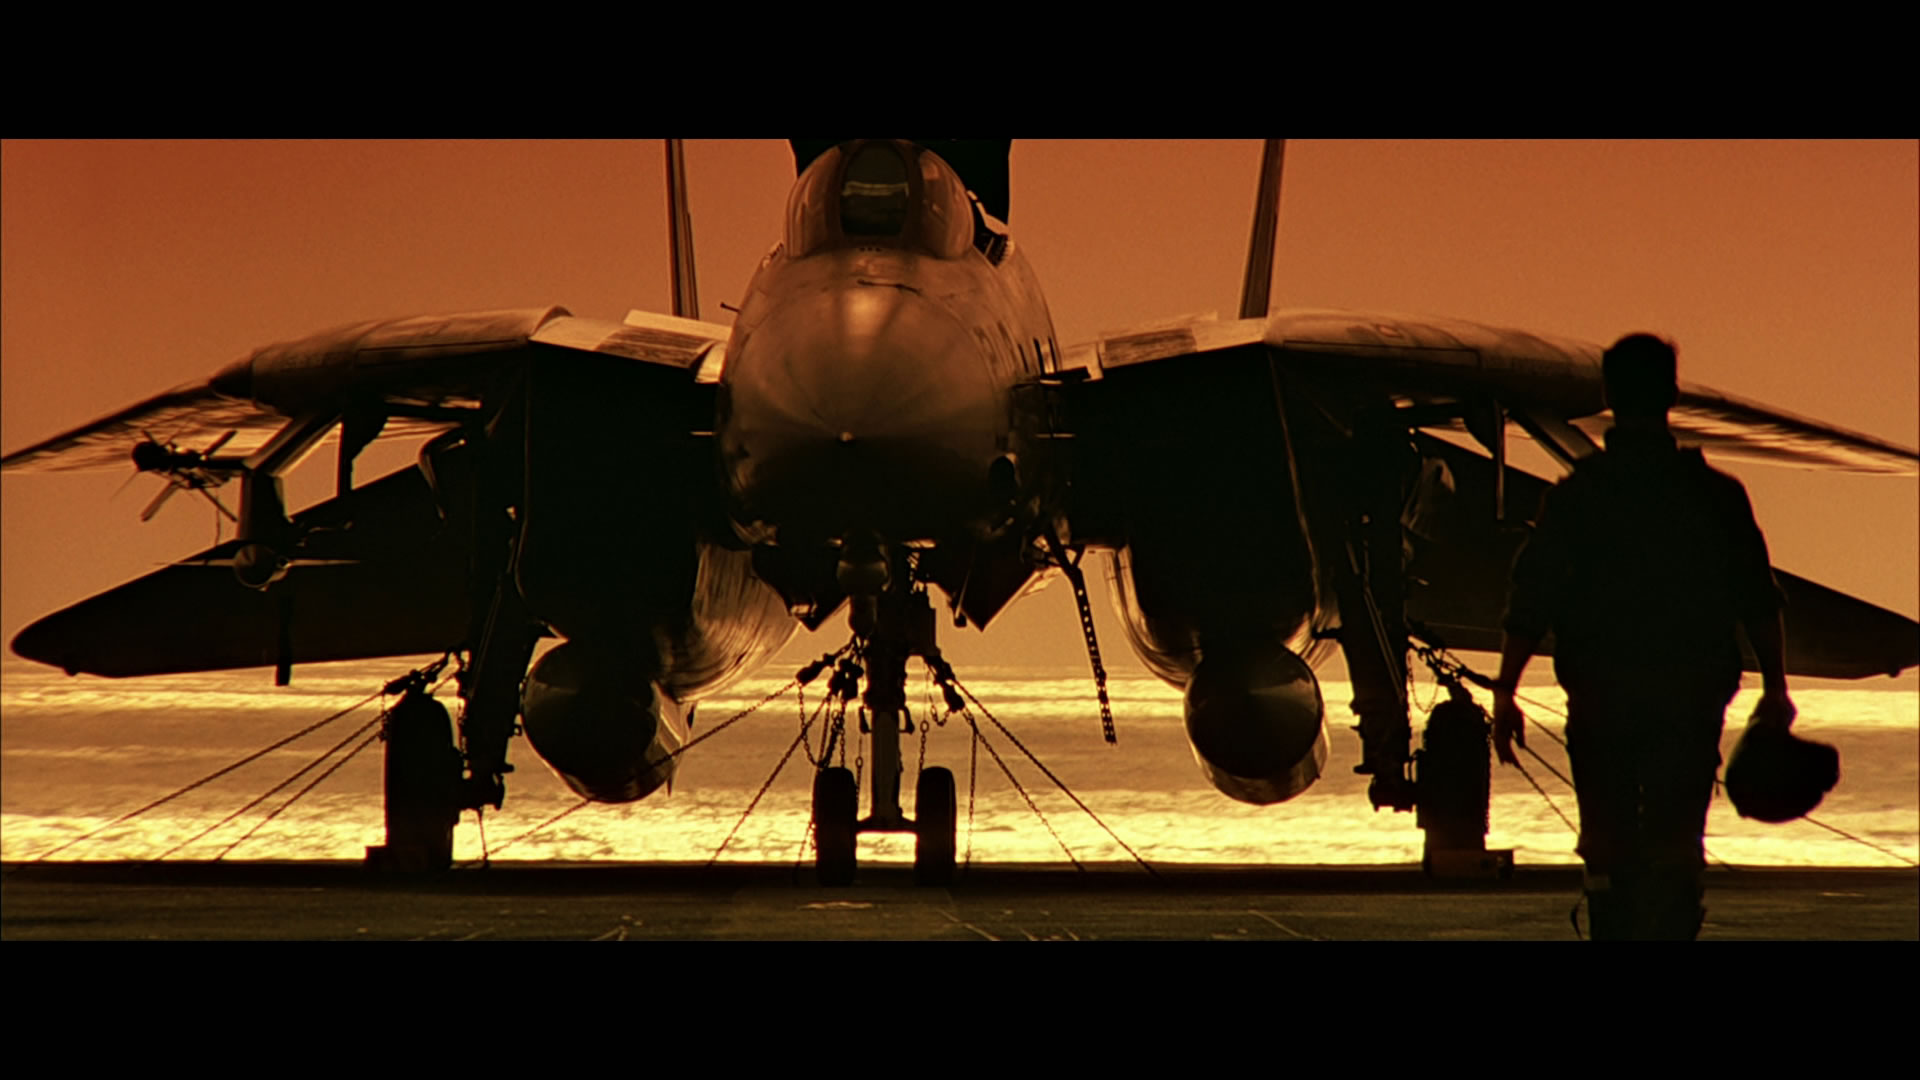 Top Gun Movie Wallpapers The Art Mad Wallpapers 1920x1080